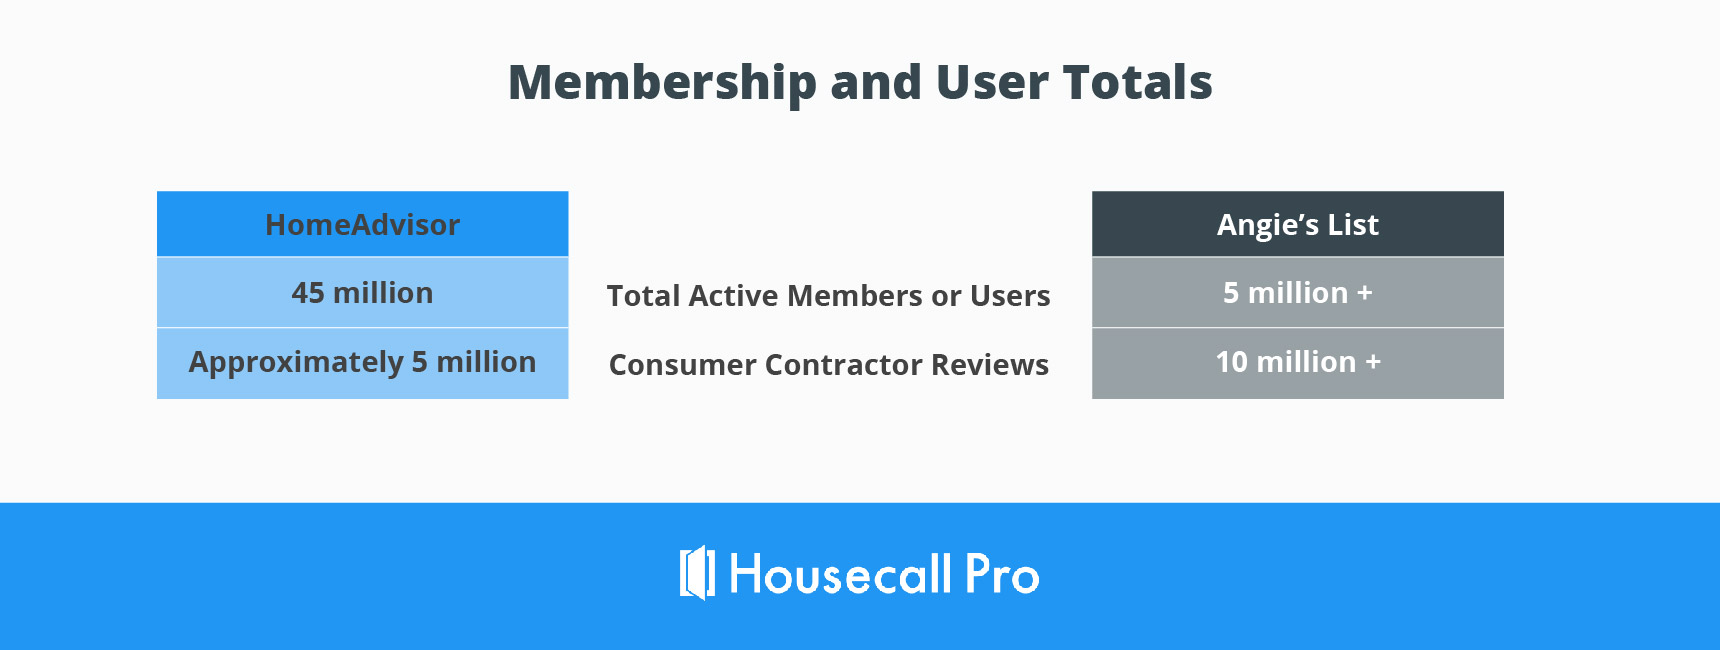 angie's list vs. homeadvisor membership